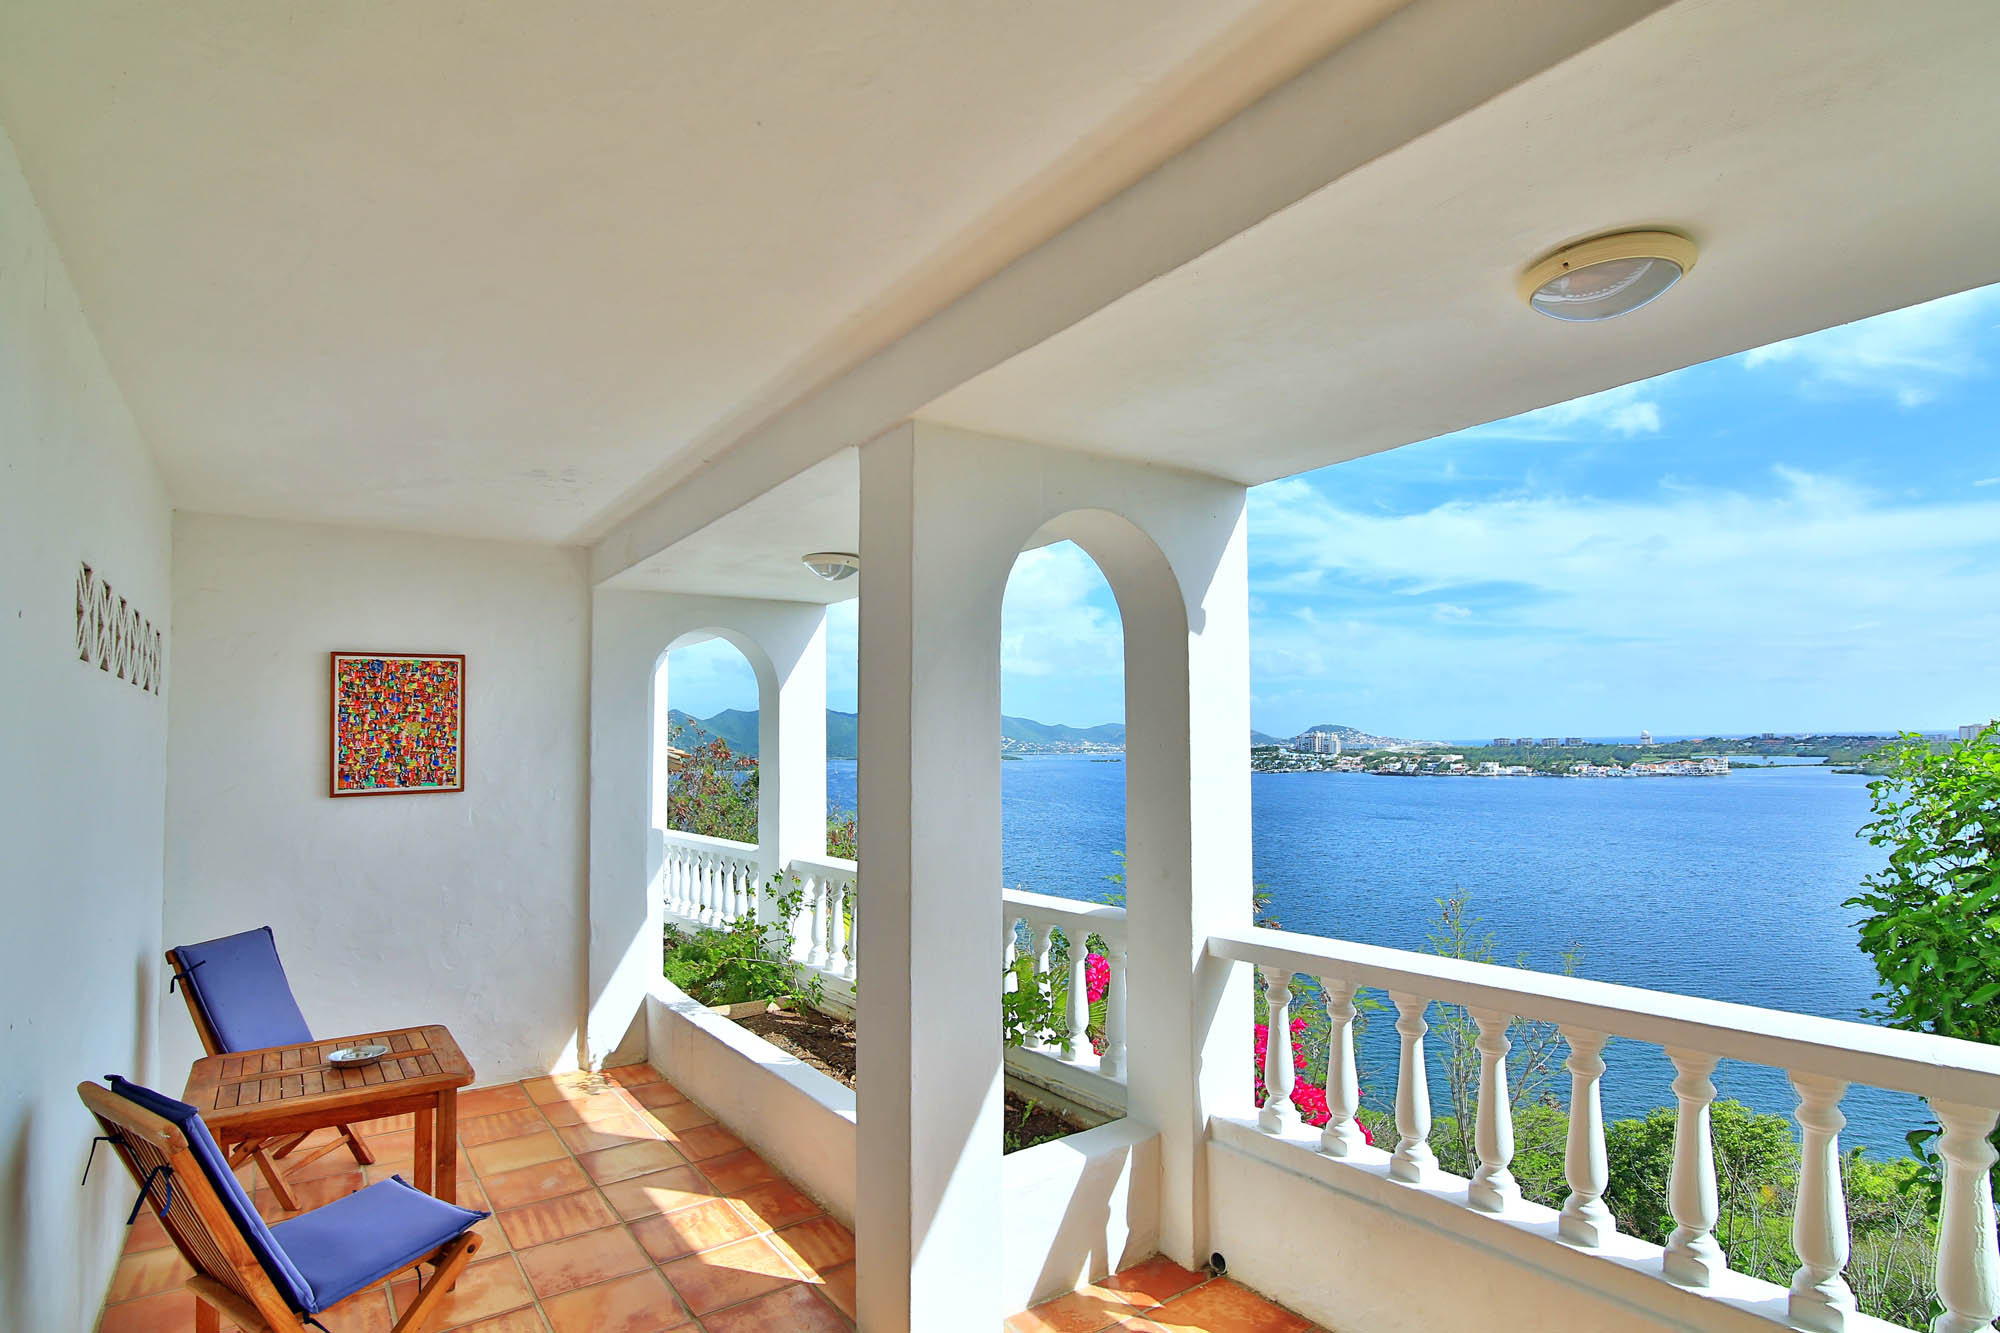 Enjoy stunning ocean views from your private patio at this Terres Basses holiday villa rental in the French West Indies.